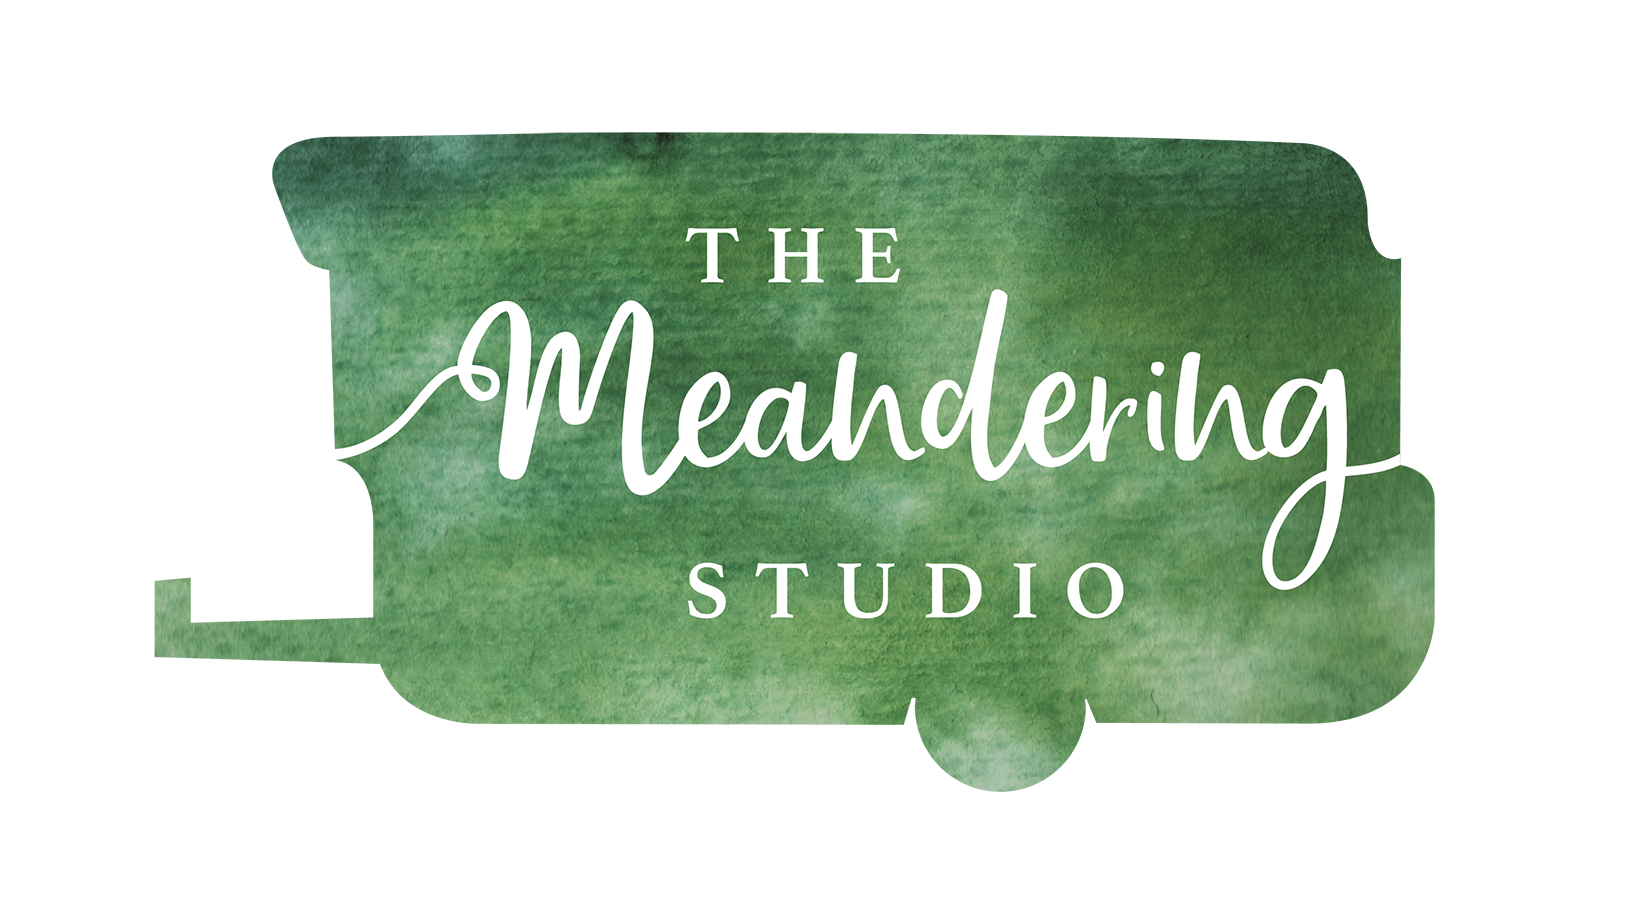 The Meandering Studio